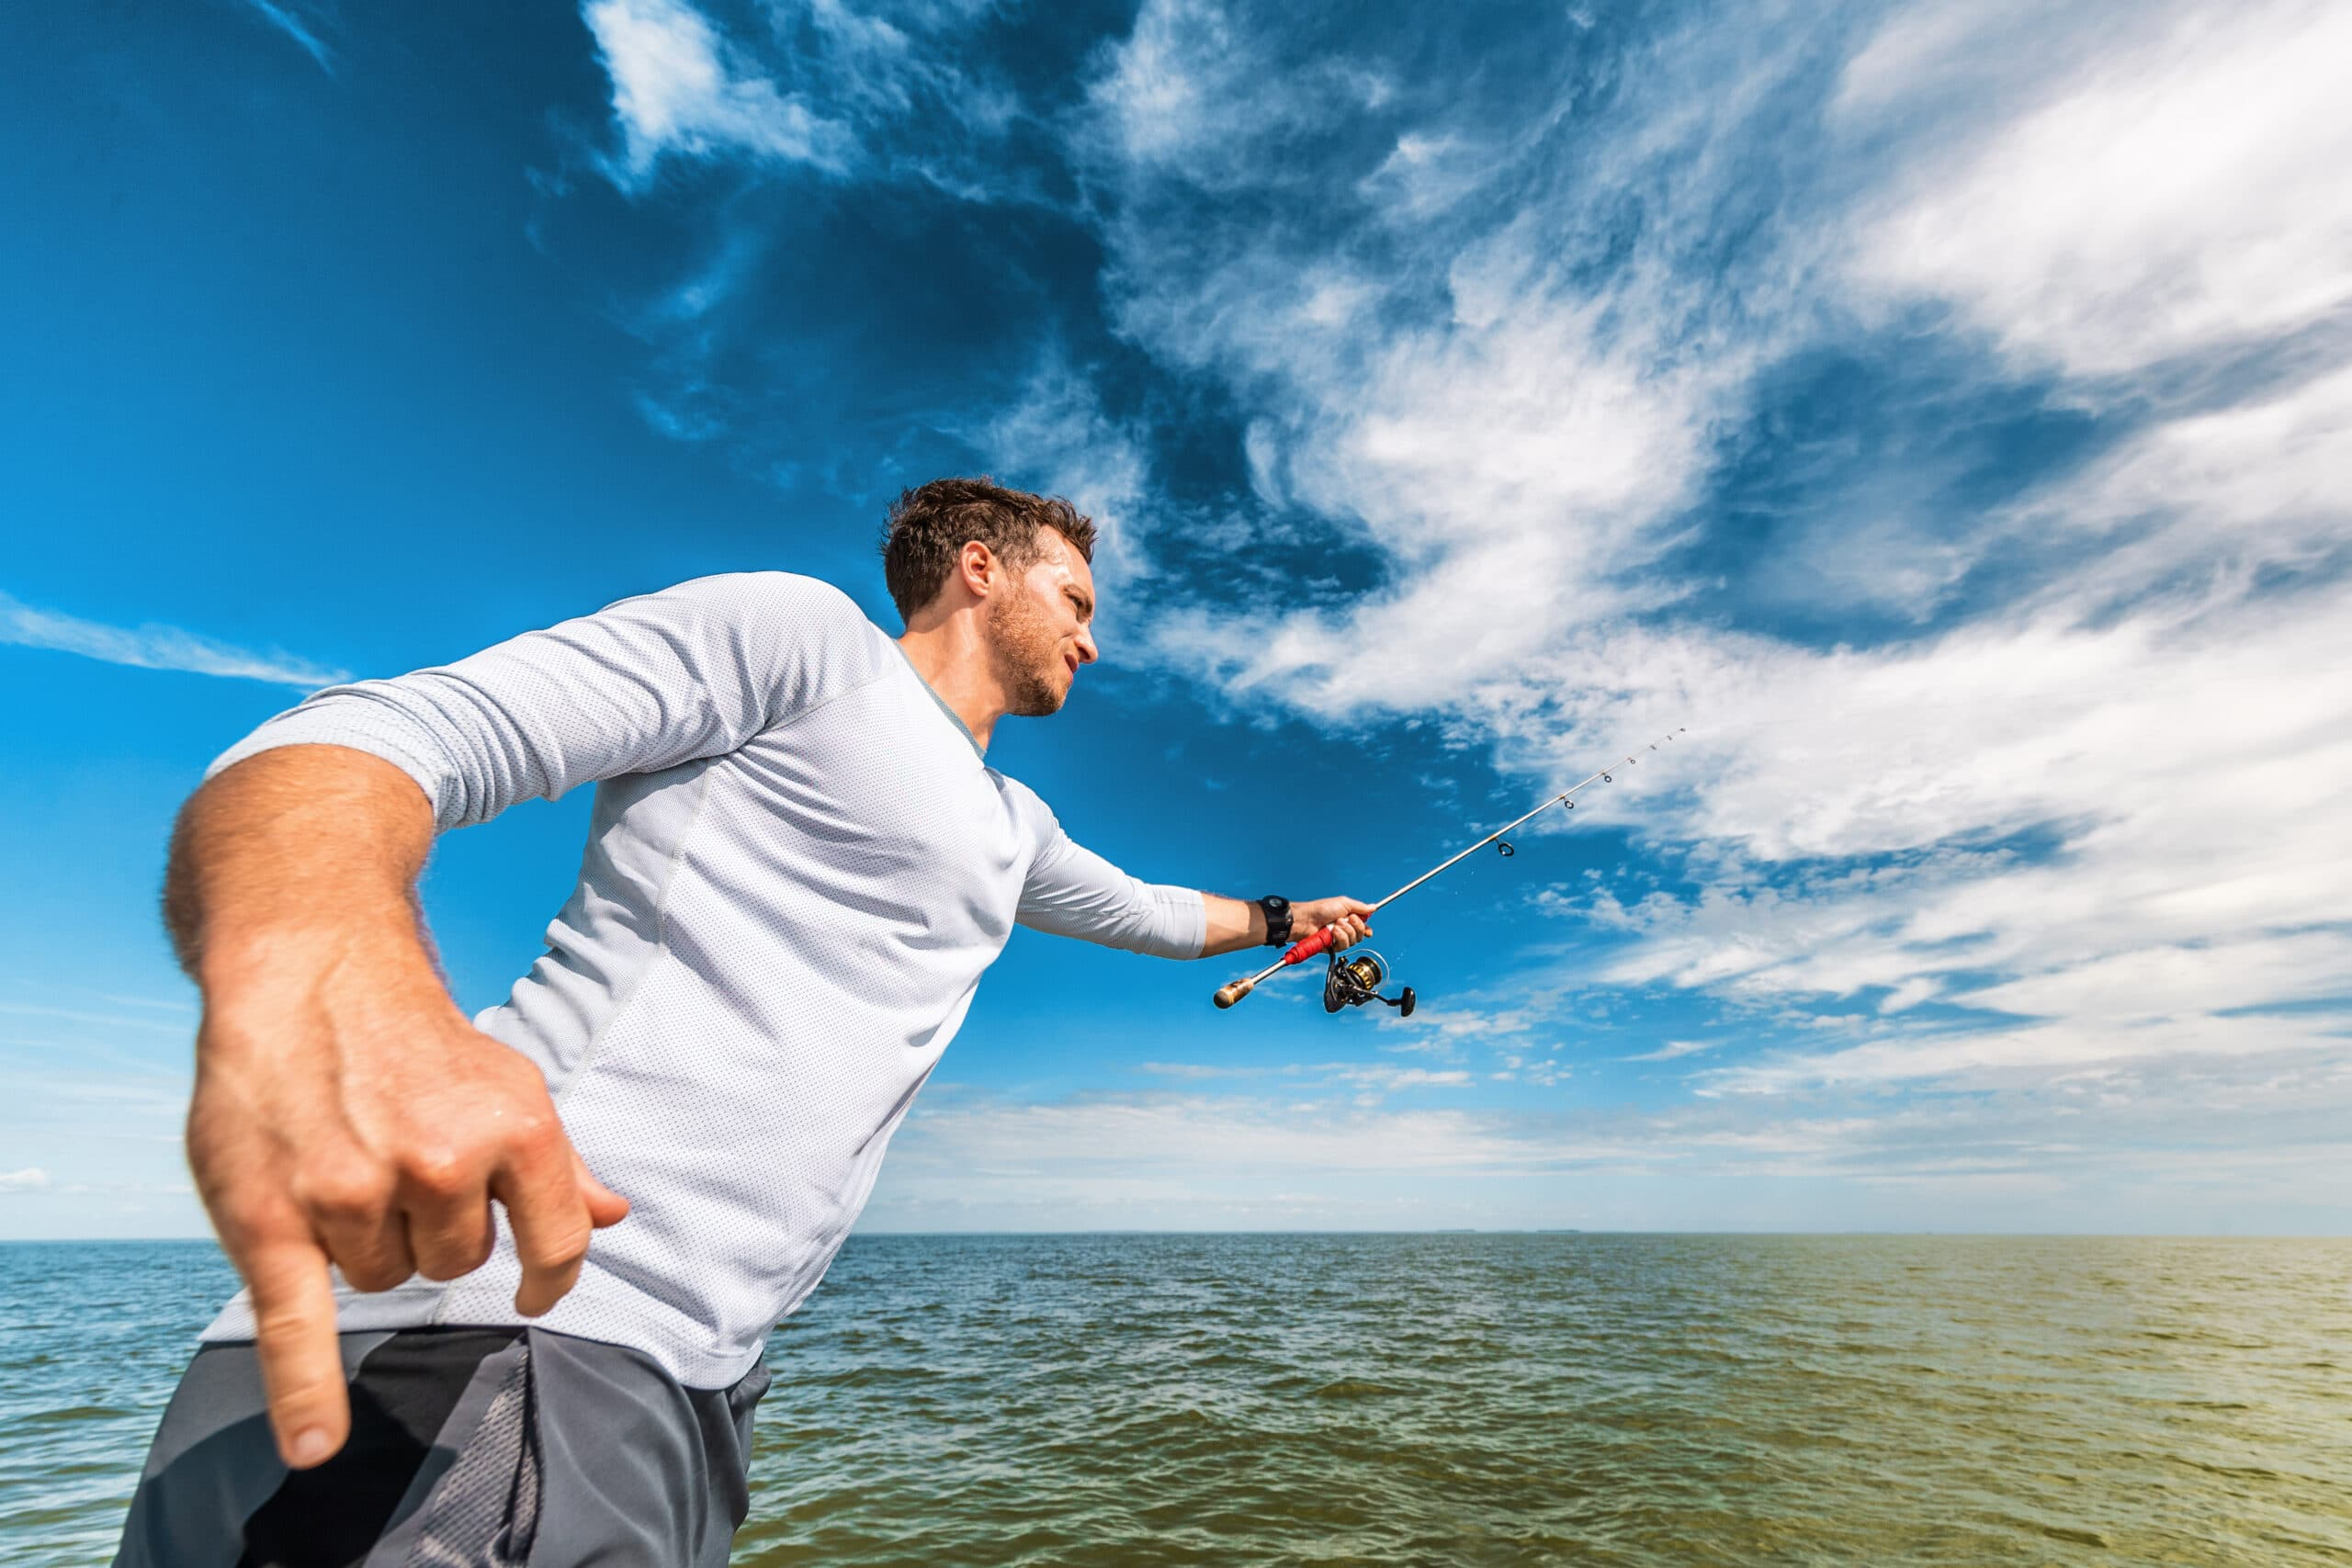 Fishing man in Florida boat excursion tour throwing line with road fisherman in Everglades